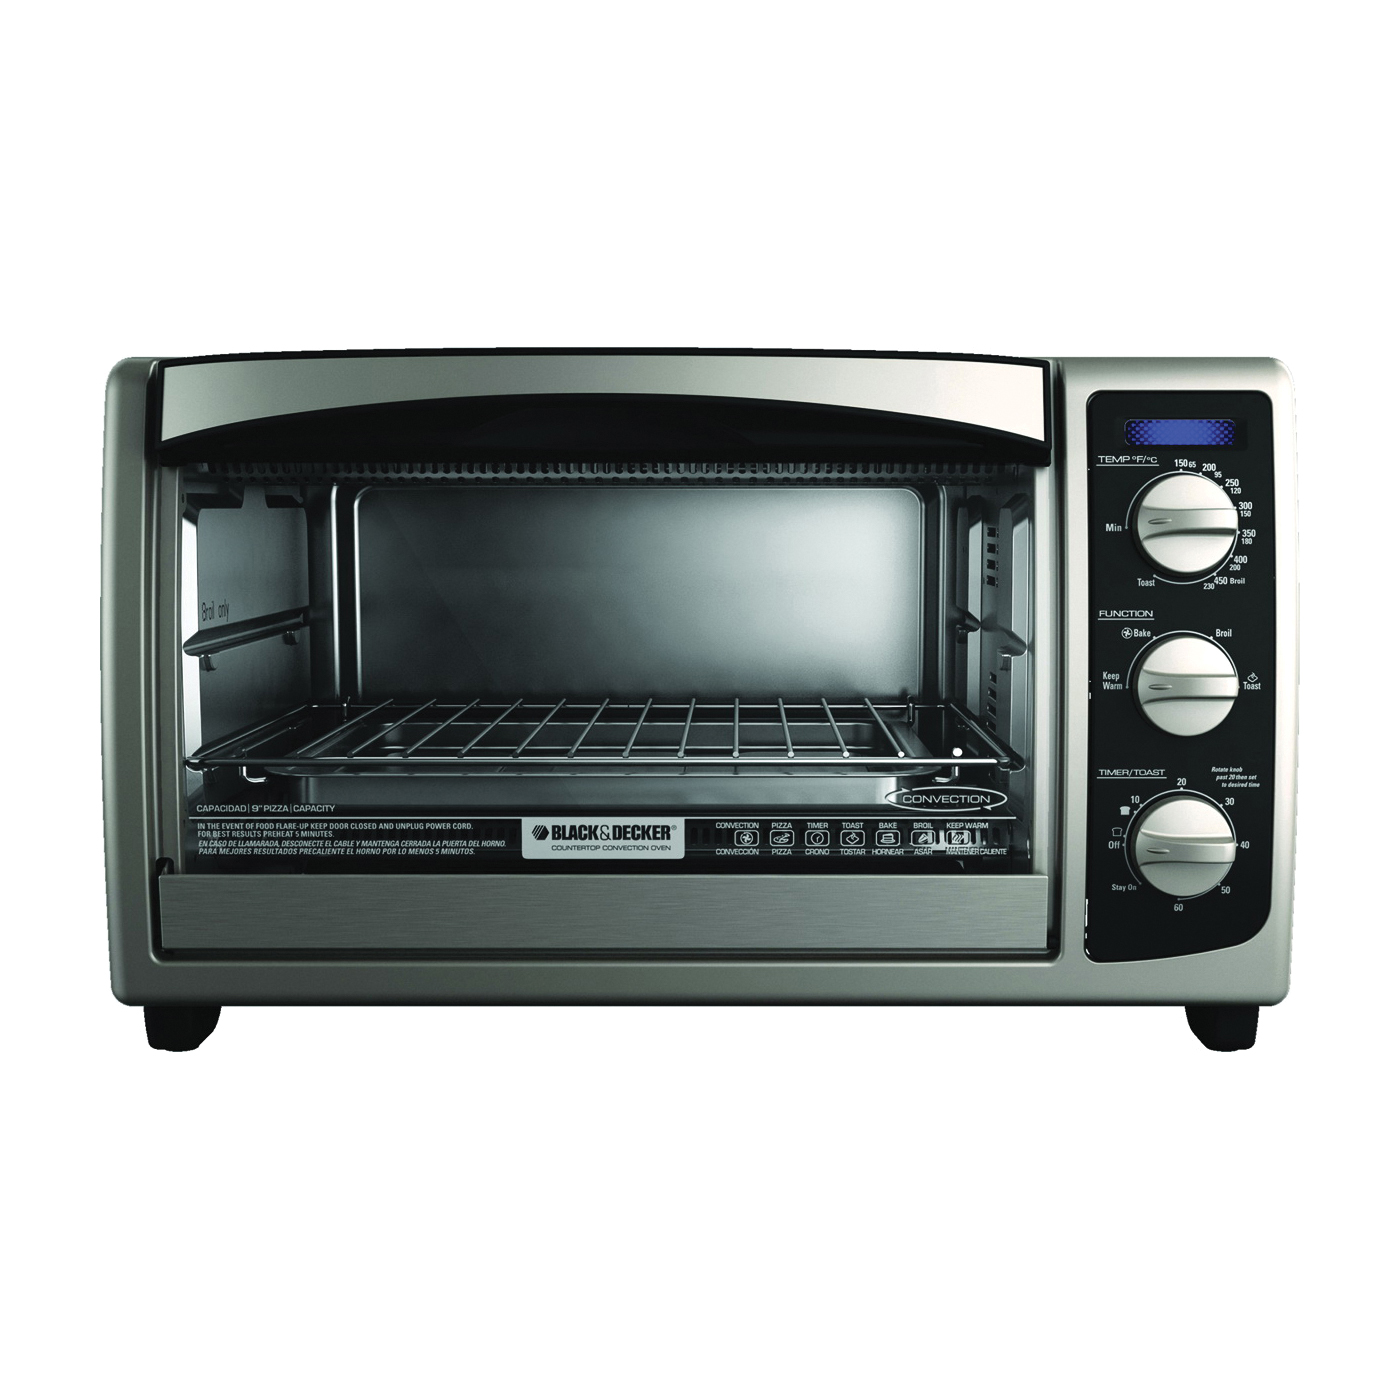 Picture of Black+Decker TO1675B Toaster Oven, 6 Slice/Hr, Stainless Steel, Black